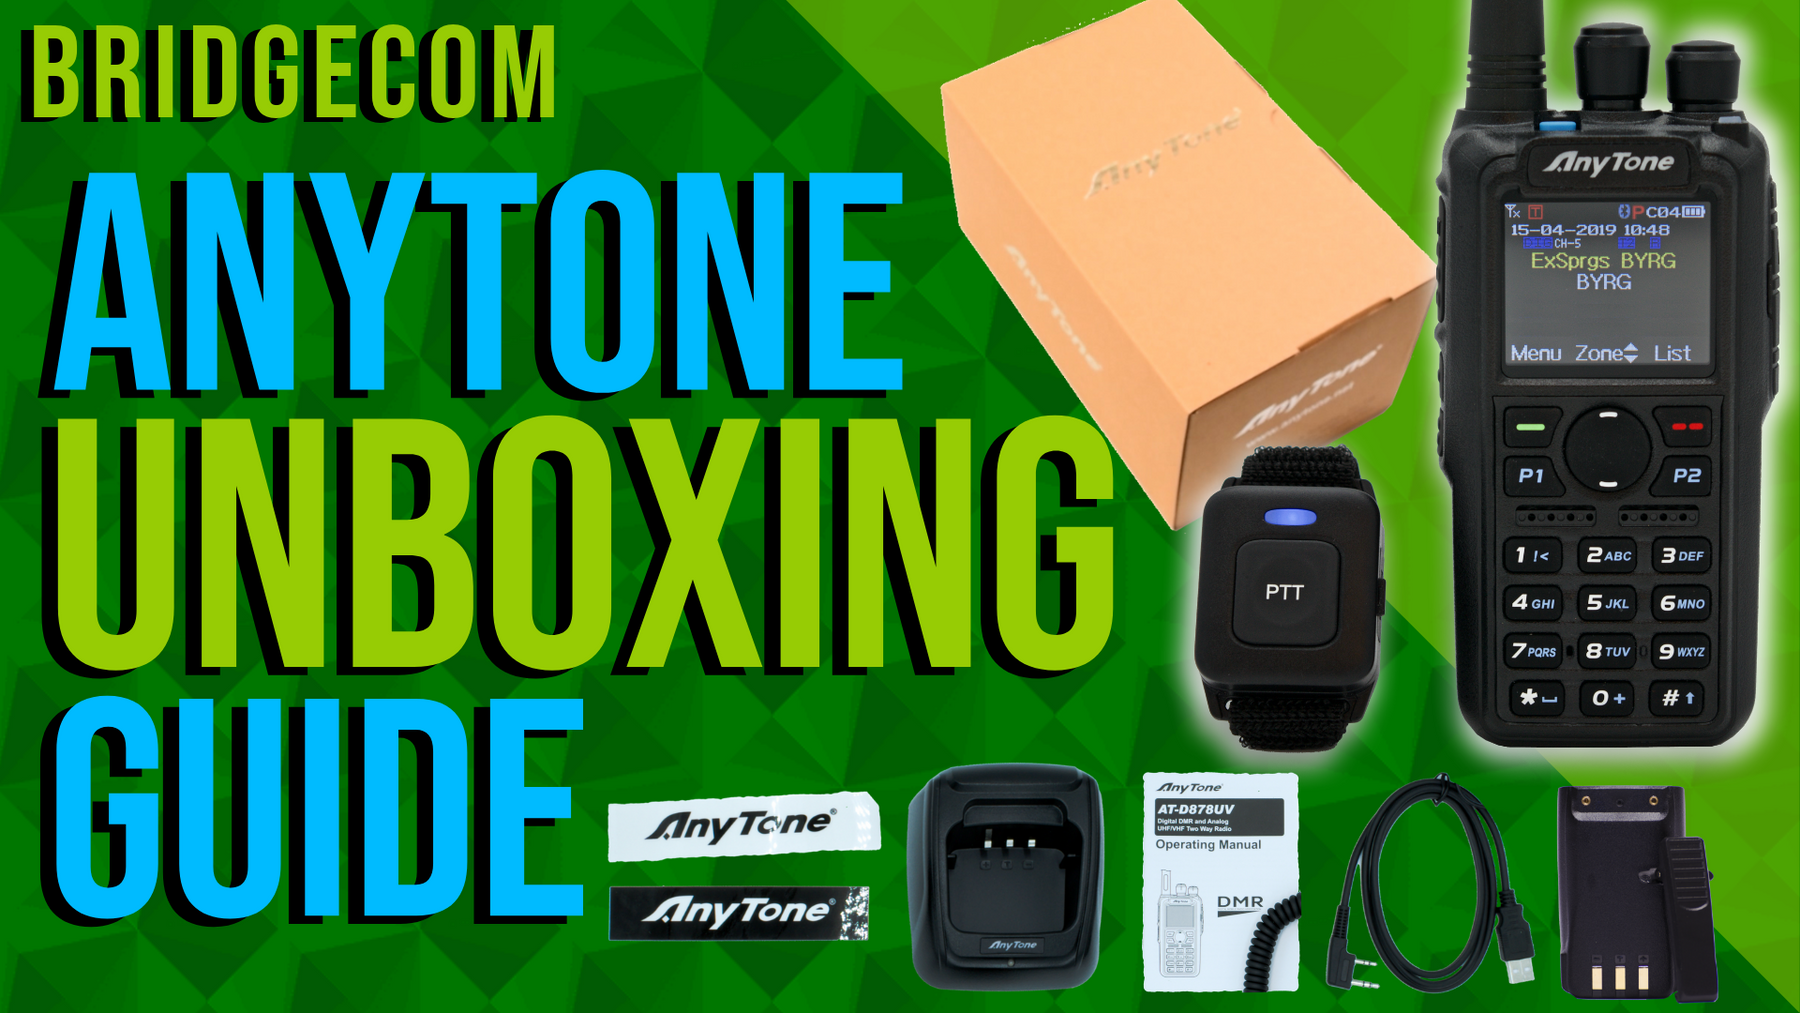 AnyTone Unboxing Guide